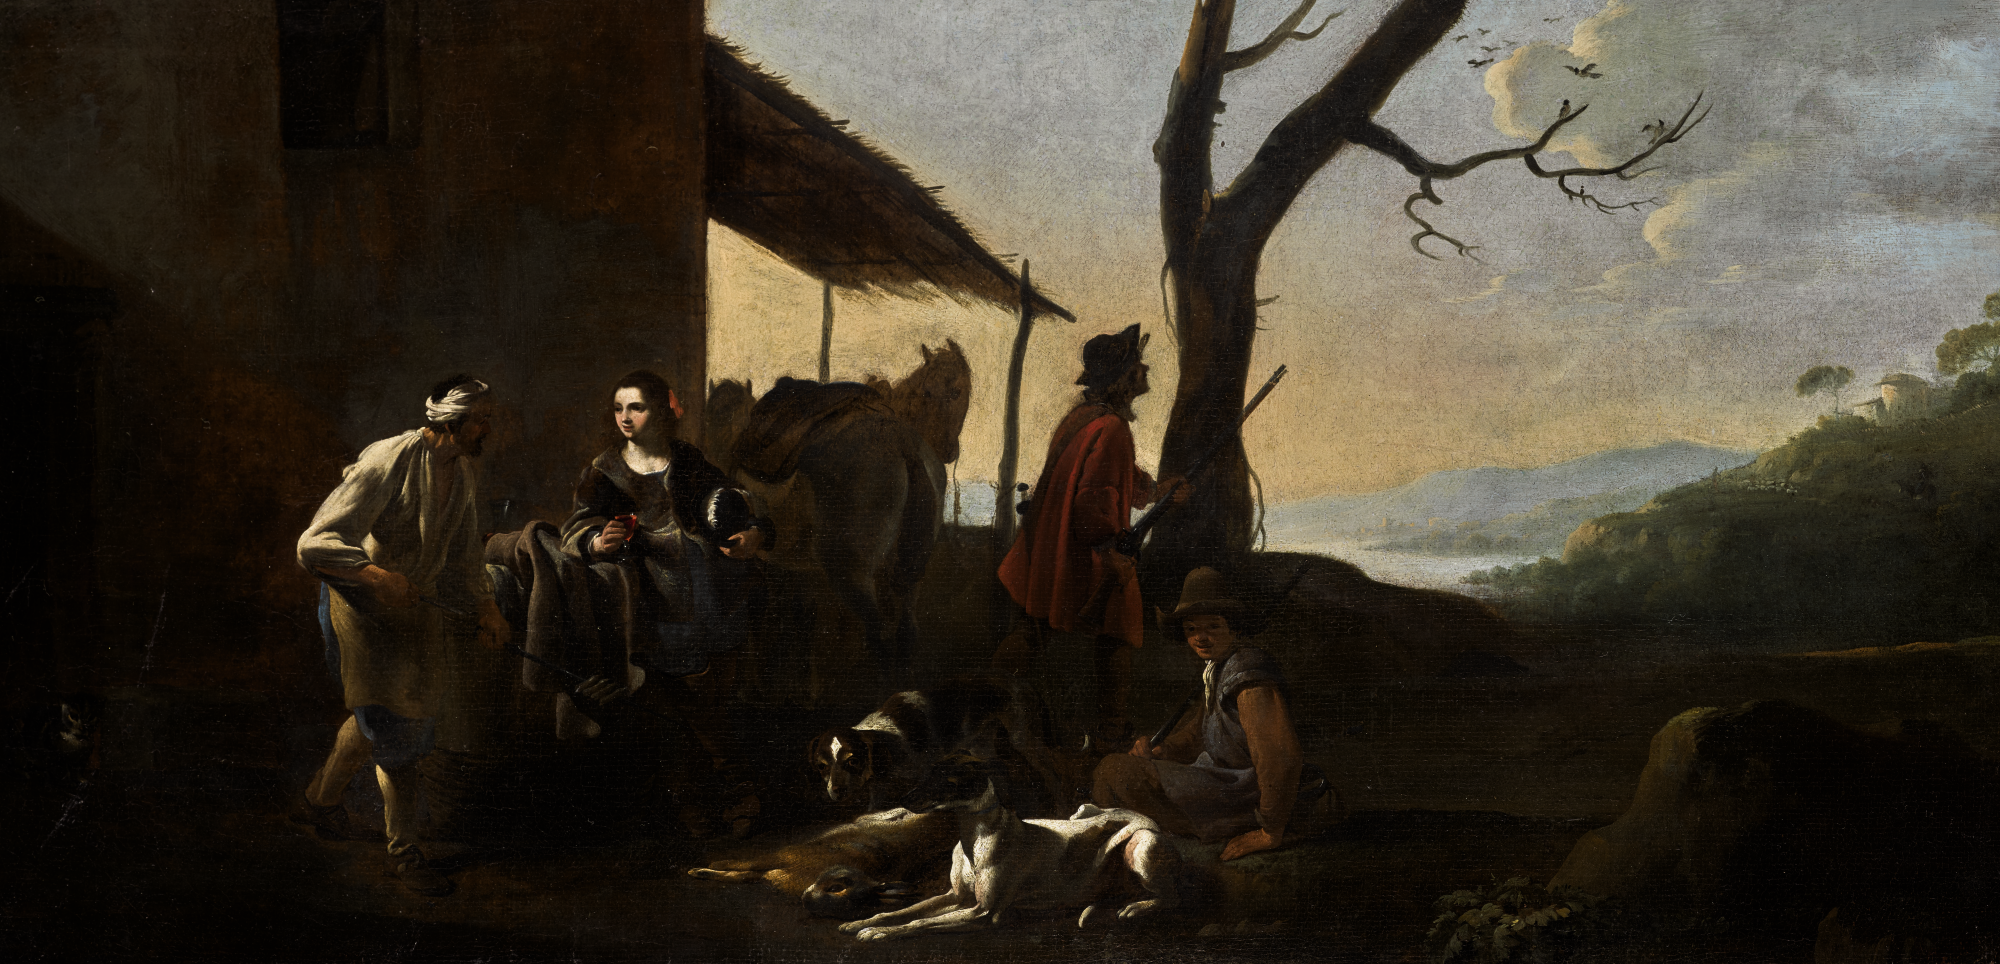 MICHAEL SWEERTS (Brussels 1618 - 1664 Goa) -  A HUNTING PARTY RESTING BY AN INN